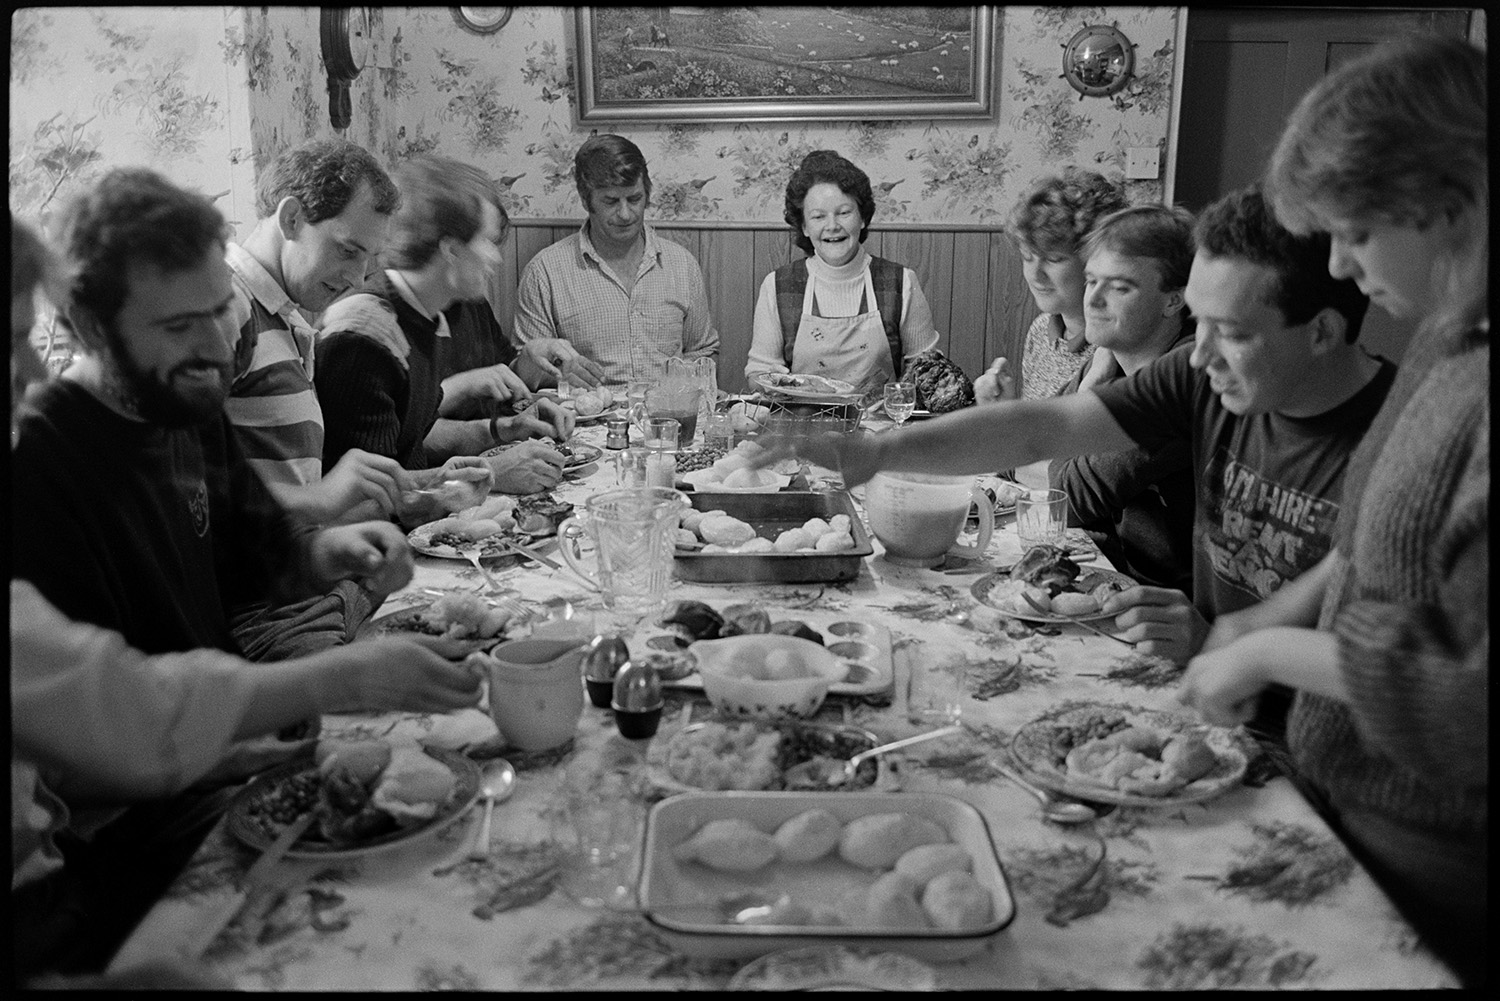 Cidermakers lunch in farmhouse kitchen, Spittle Farm, Chulmleigh, October 1987. Documentary photograph by James Ravilious for the Beaford Archive.